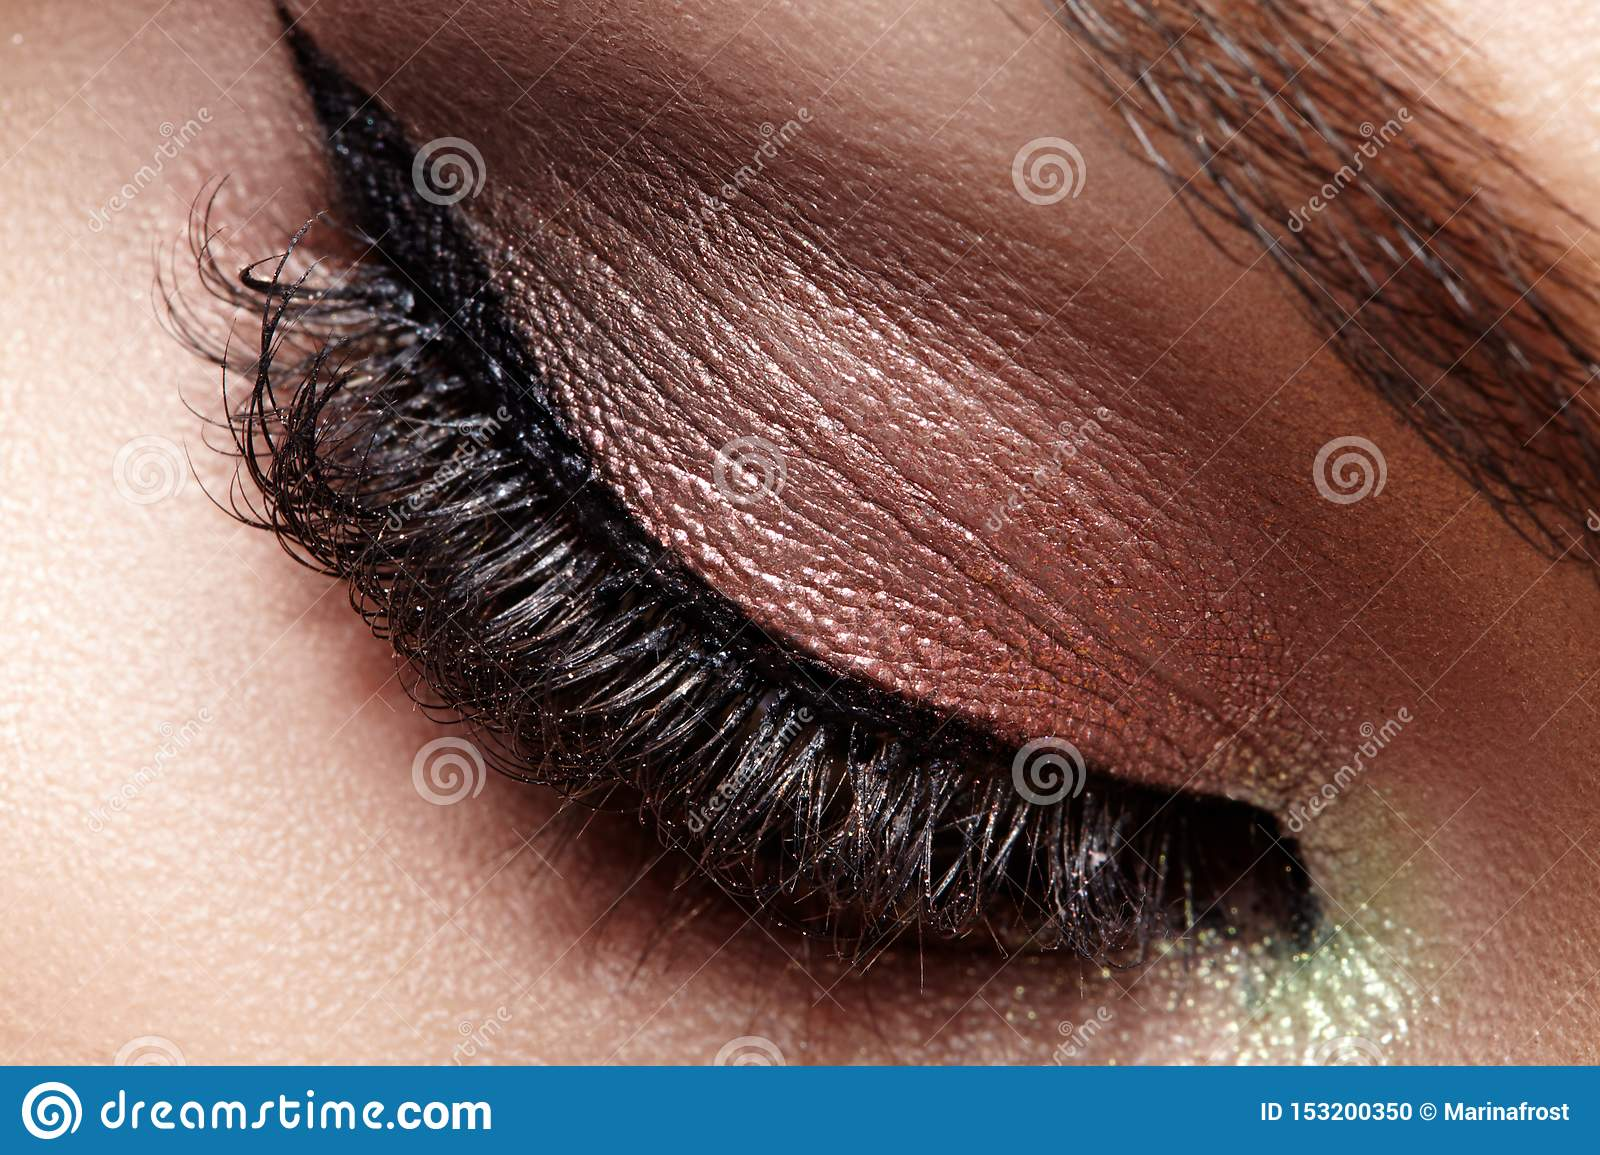 Closeup Macro of Woman Face with Eyes Make-up. Fashion Celebrate Makeup, Glowy Clean Skin, Extra Long Eyelashes